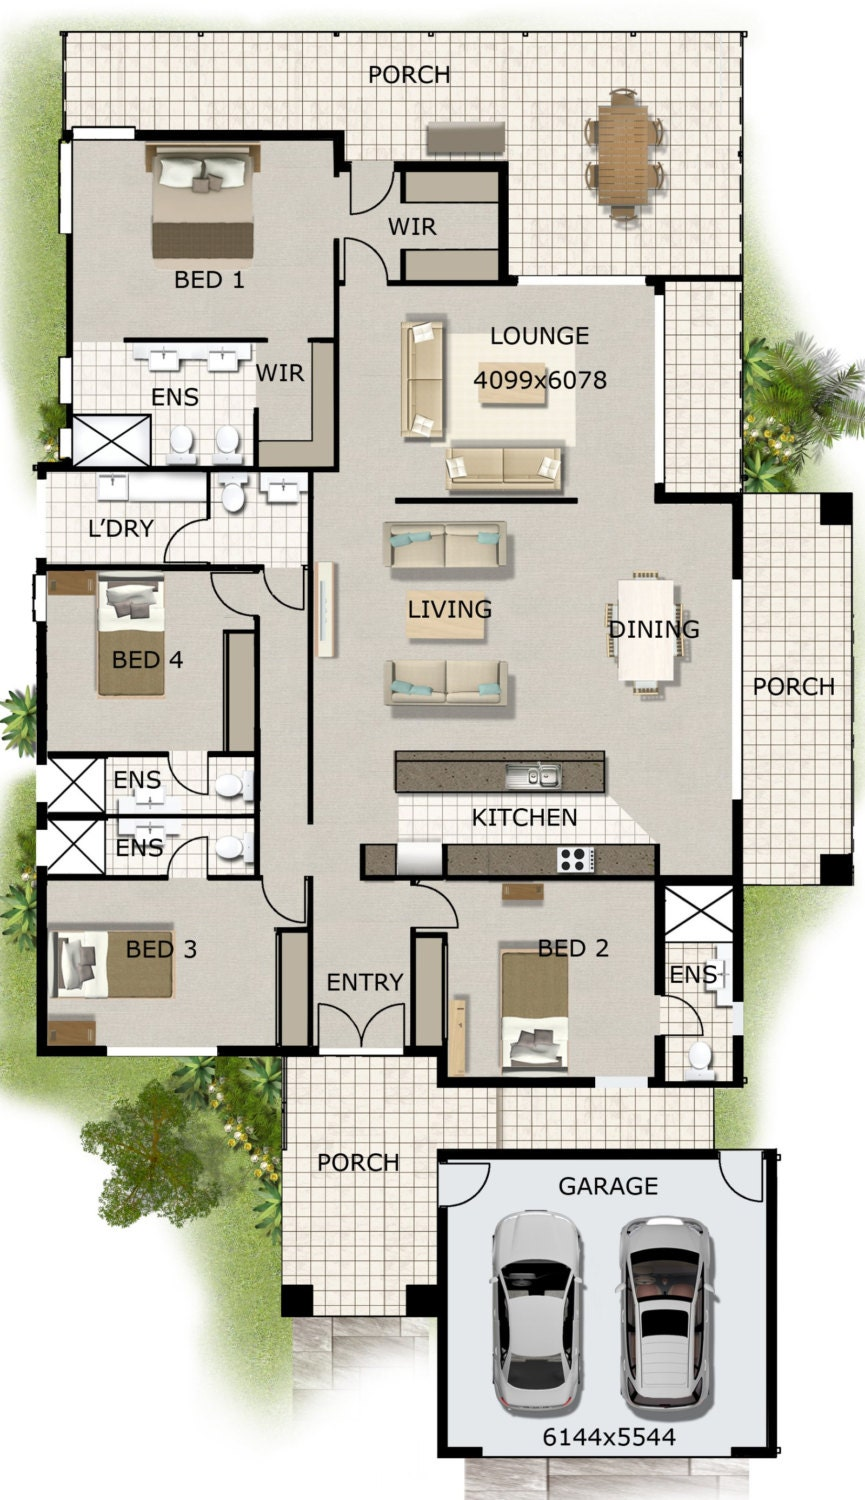 MOST POR HOMES -4 Bedroom House Designs - Australian and ...